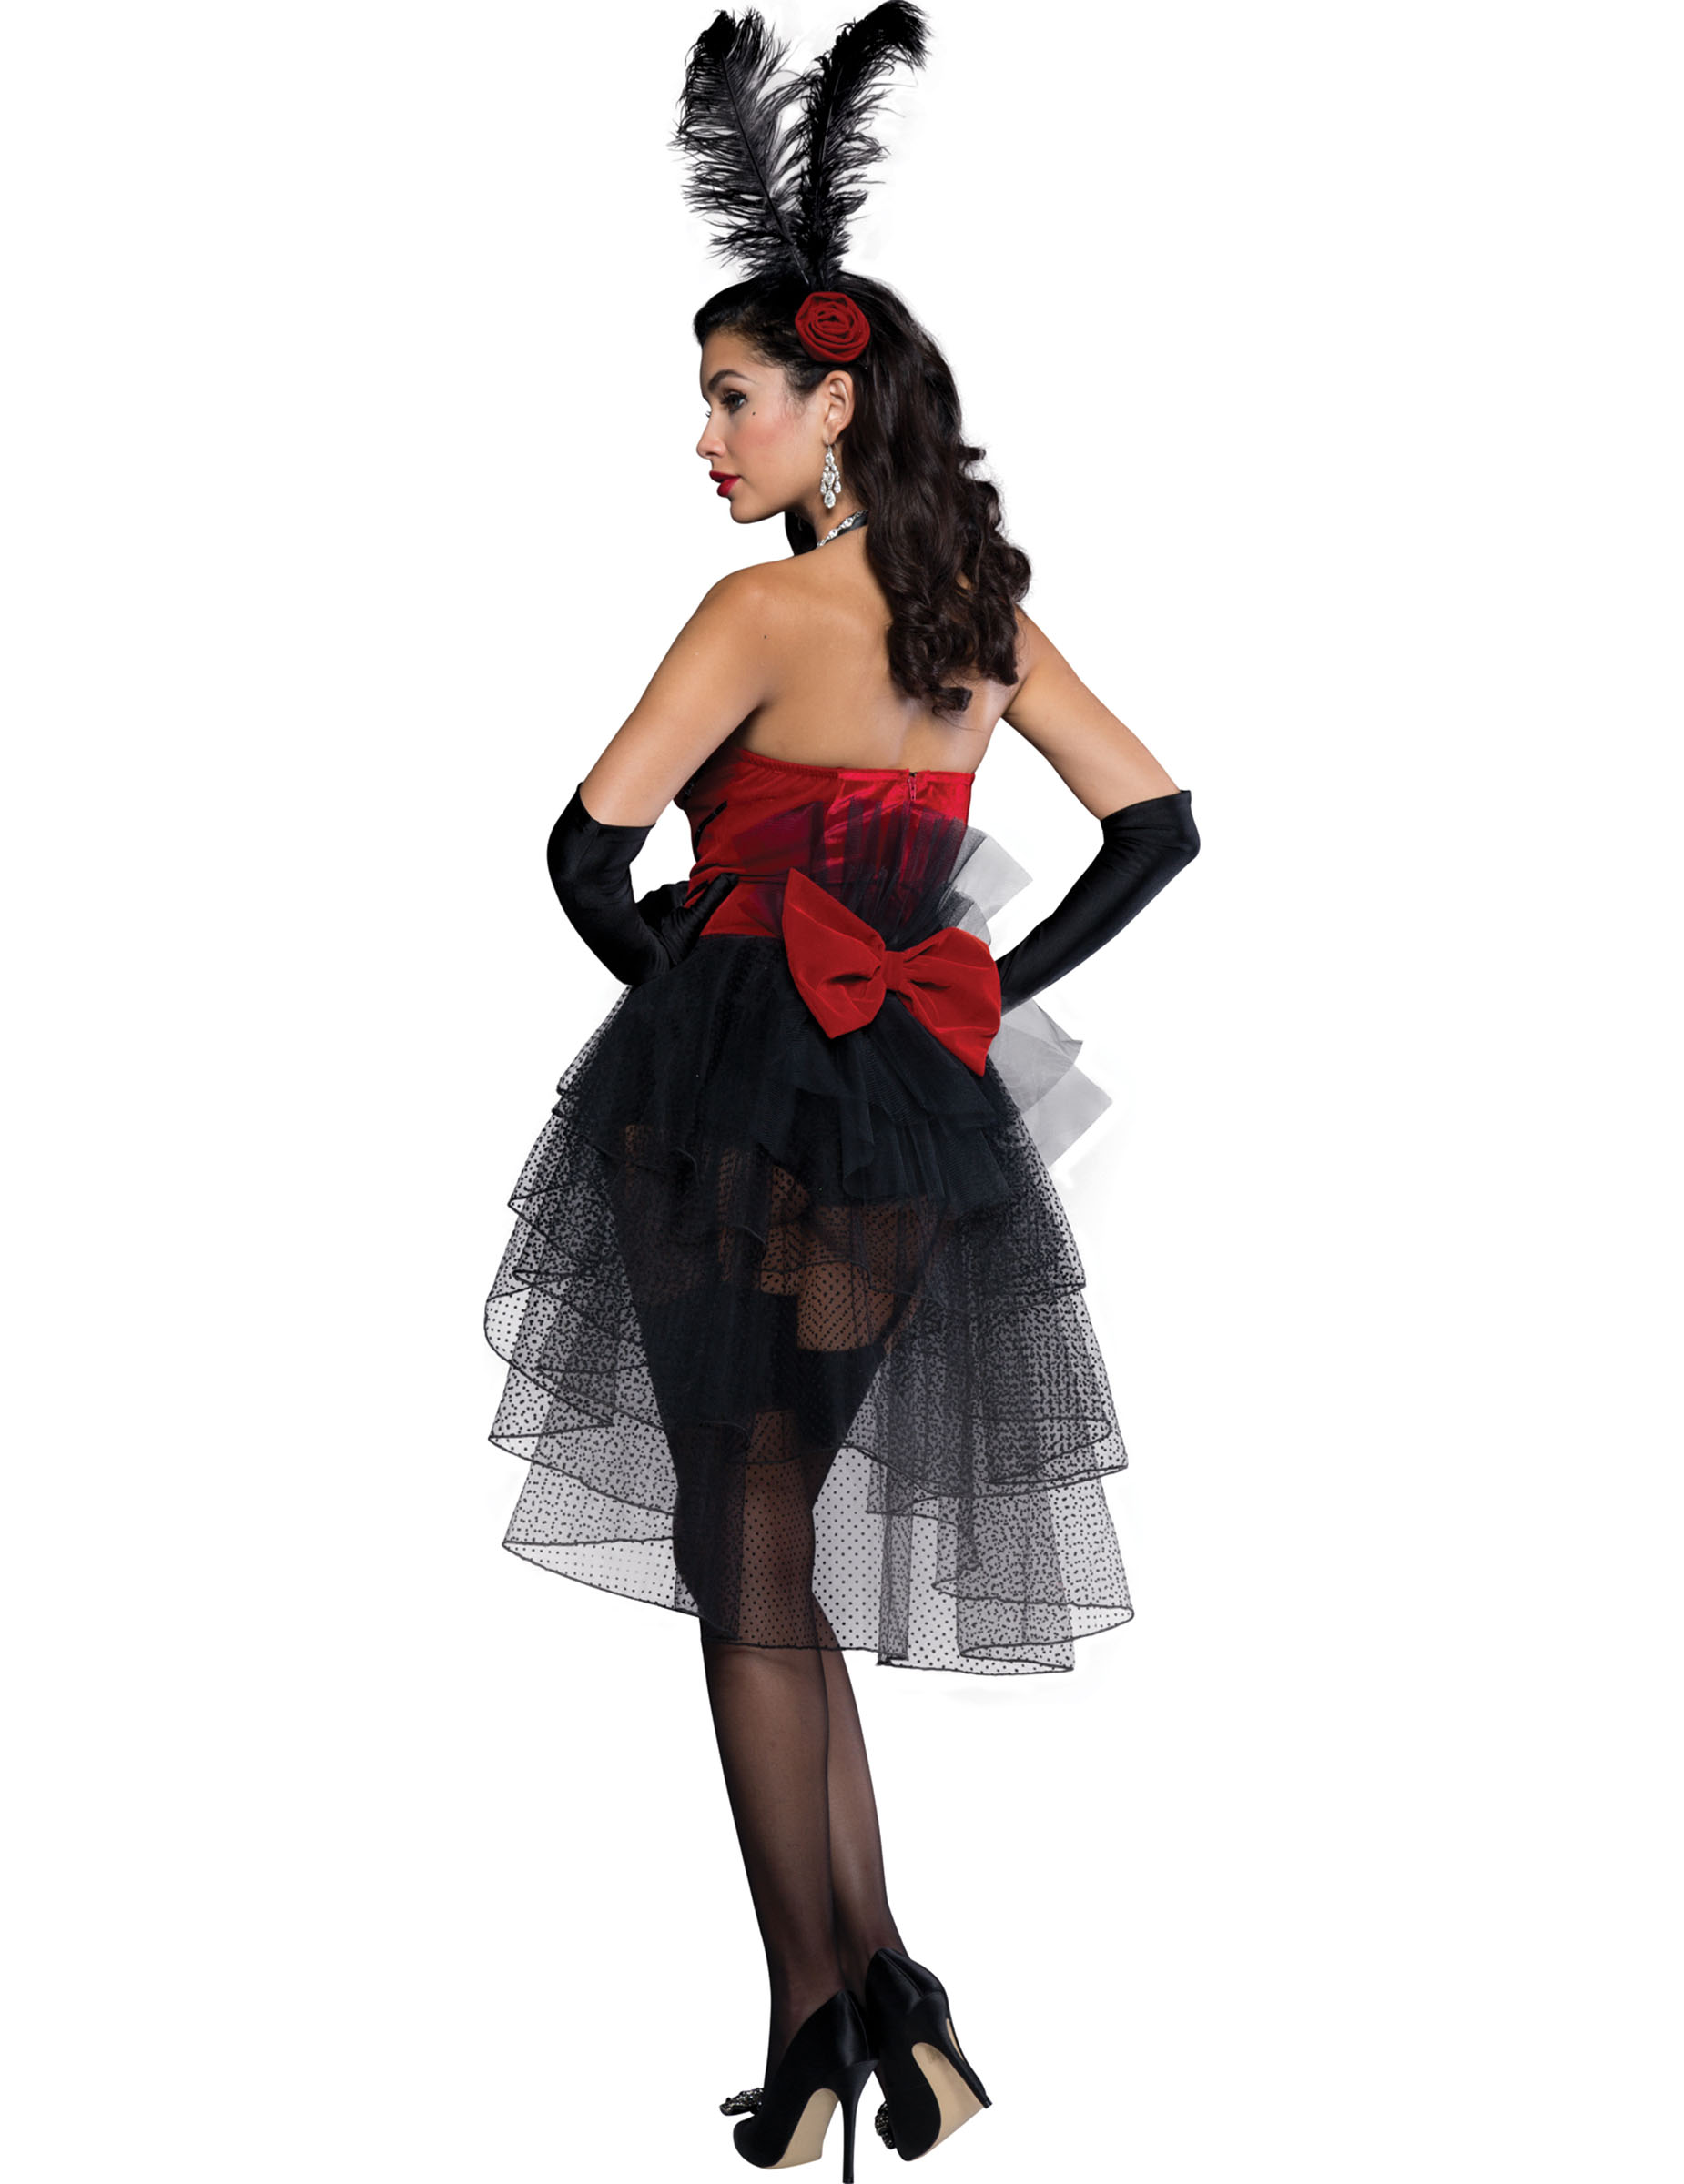 342503ddf54b58 Luxe Charleston danseres outfit voor dames - Vegaoo.nl